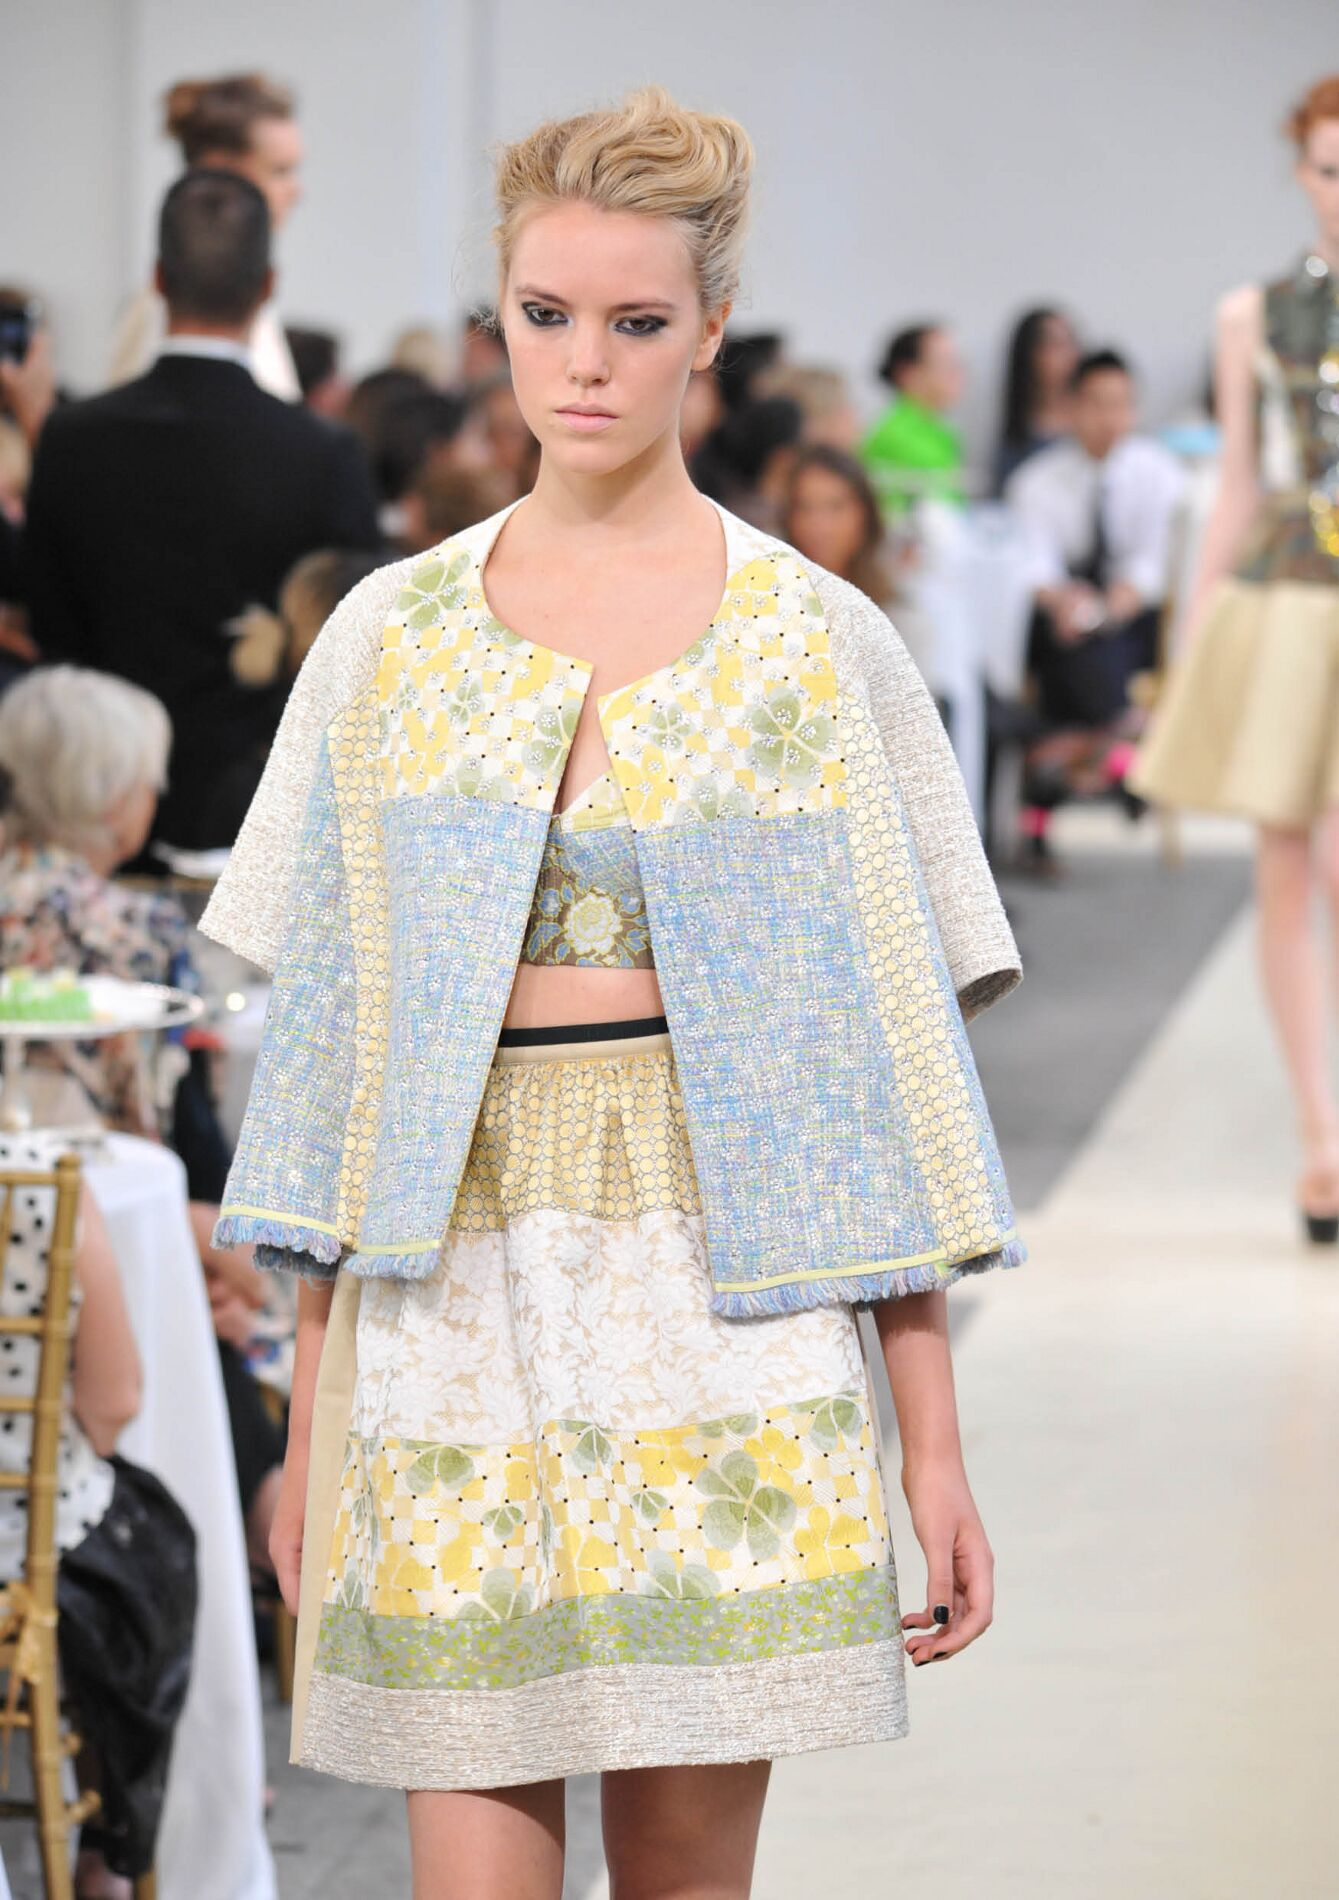 Antonio Marras Spring 2013 Catwalk